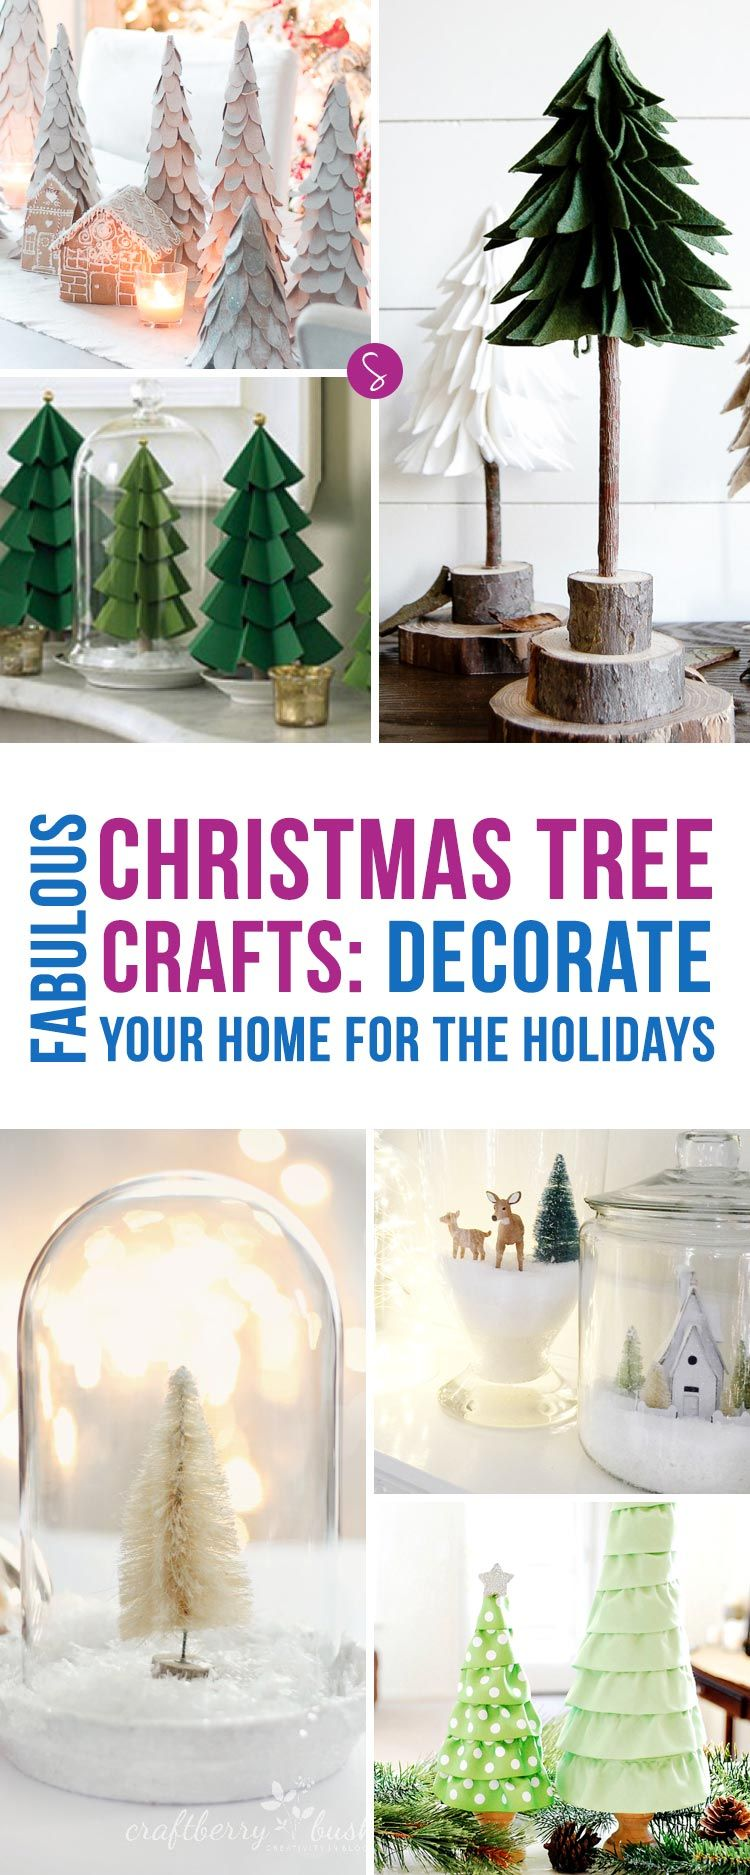 Oh My These Christmas Tree Crafts Are Stunning Can T Wait To Decorate Home For The Holidays